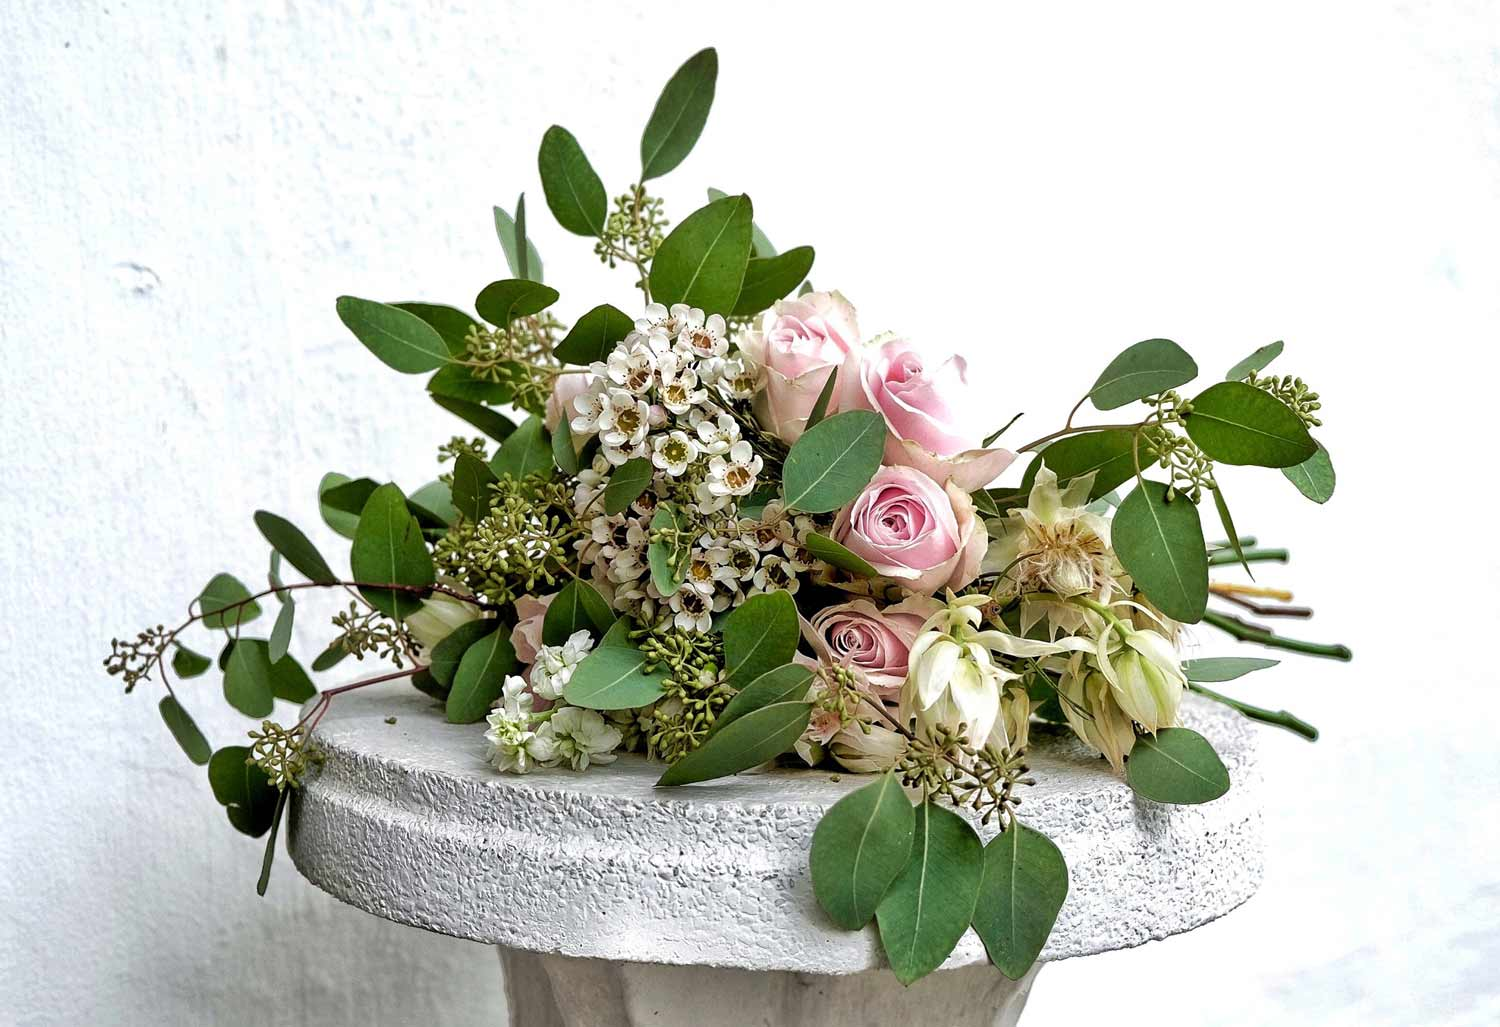 beautiful bouquet of flowers with green leaves and pink roses